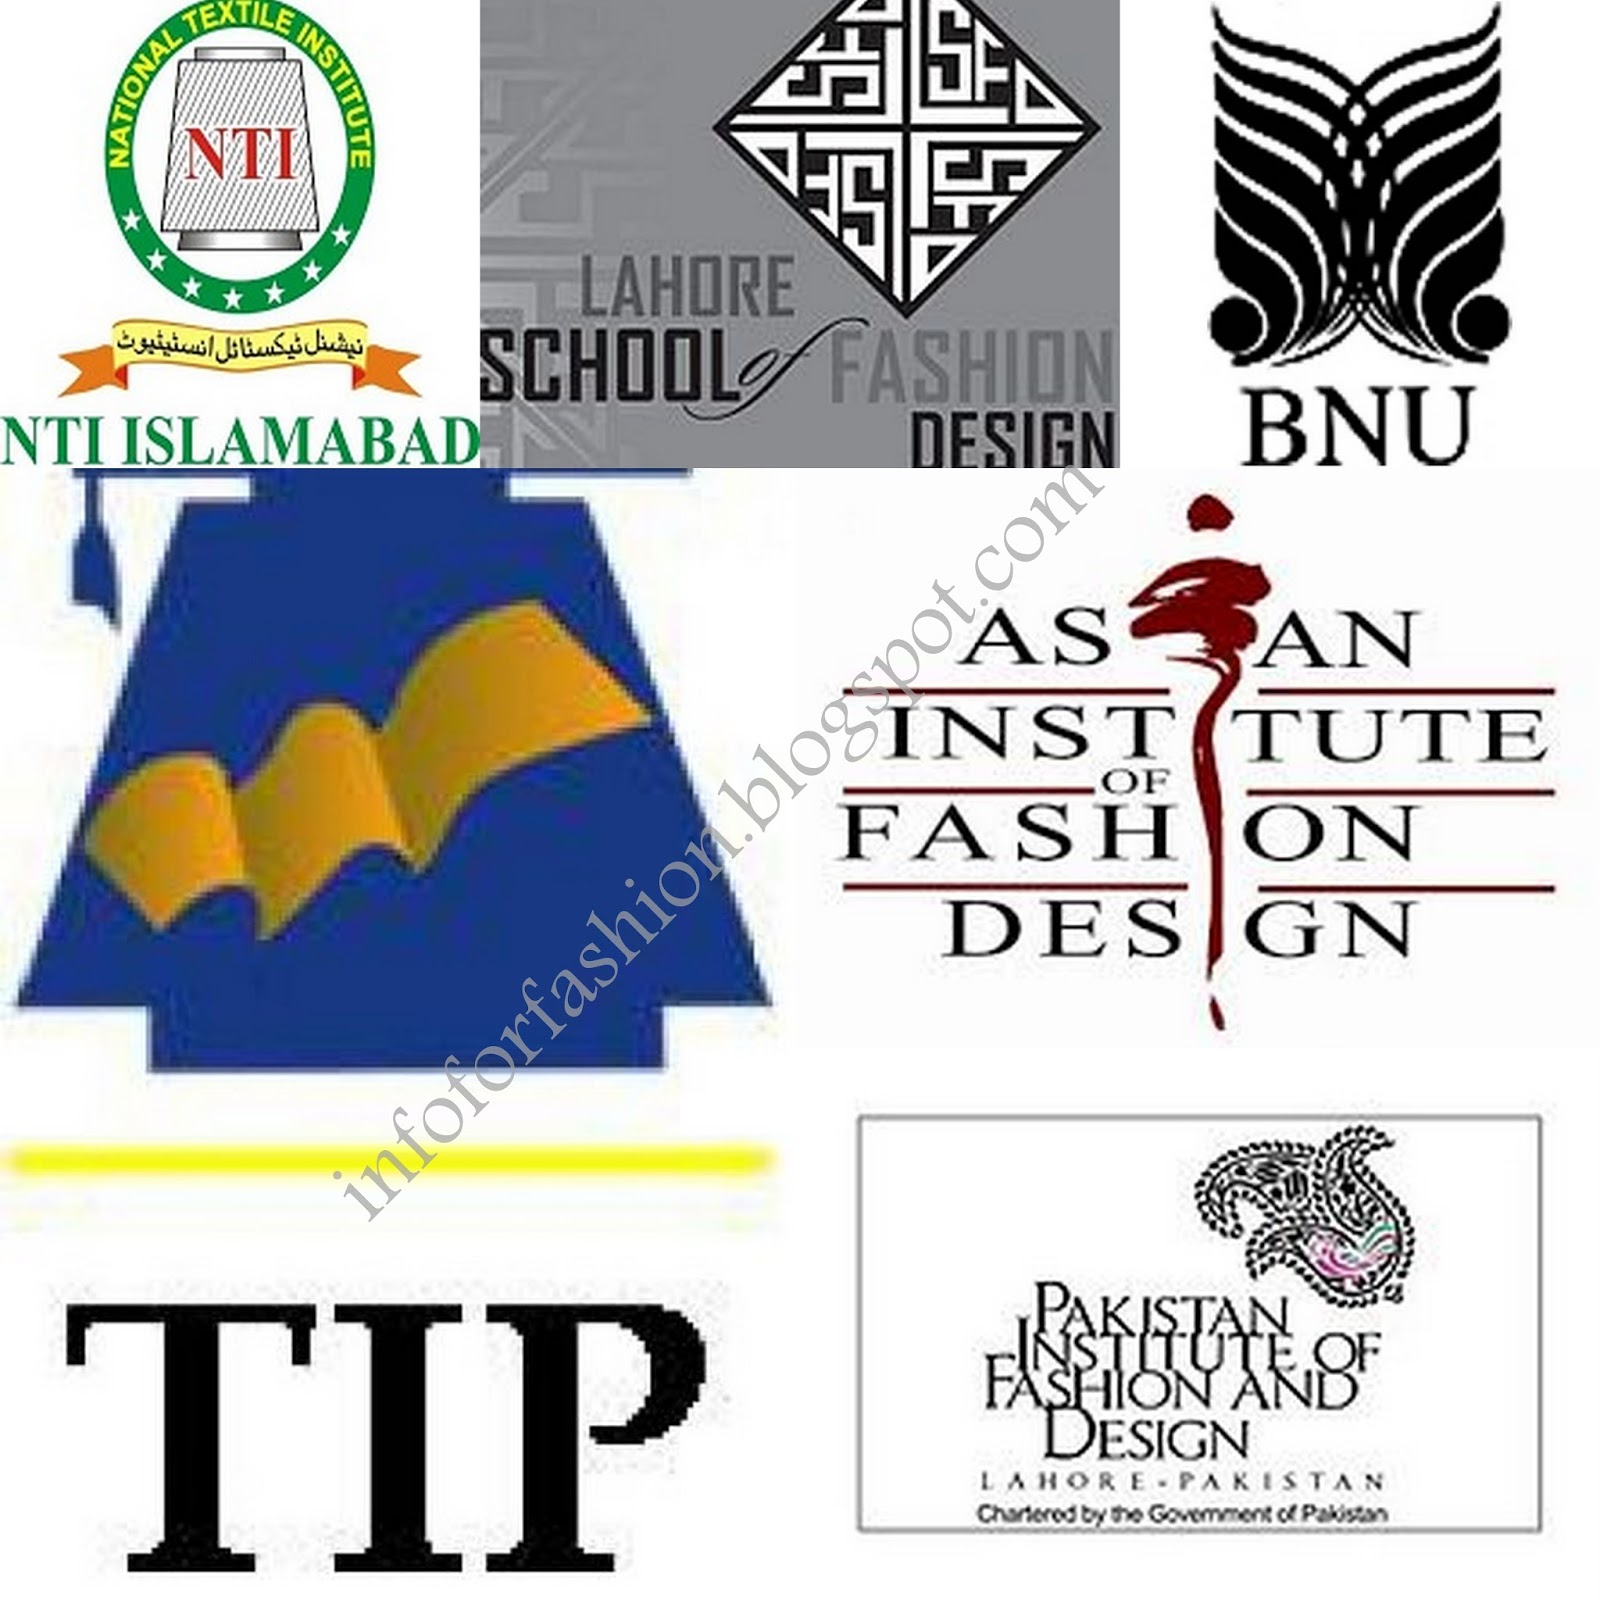 PIFD - Pakistan Institute of Fashion and 39